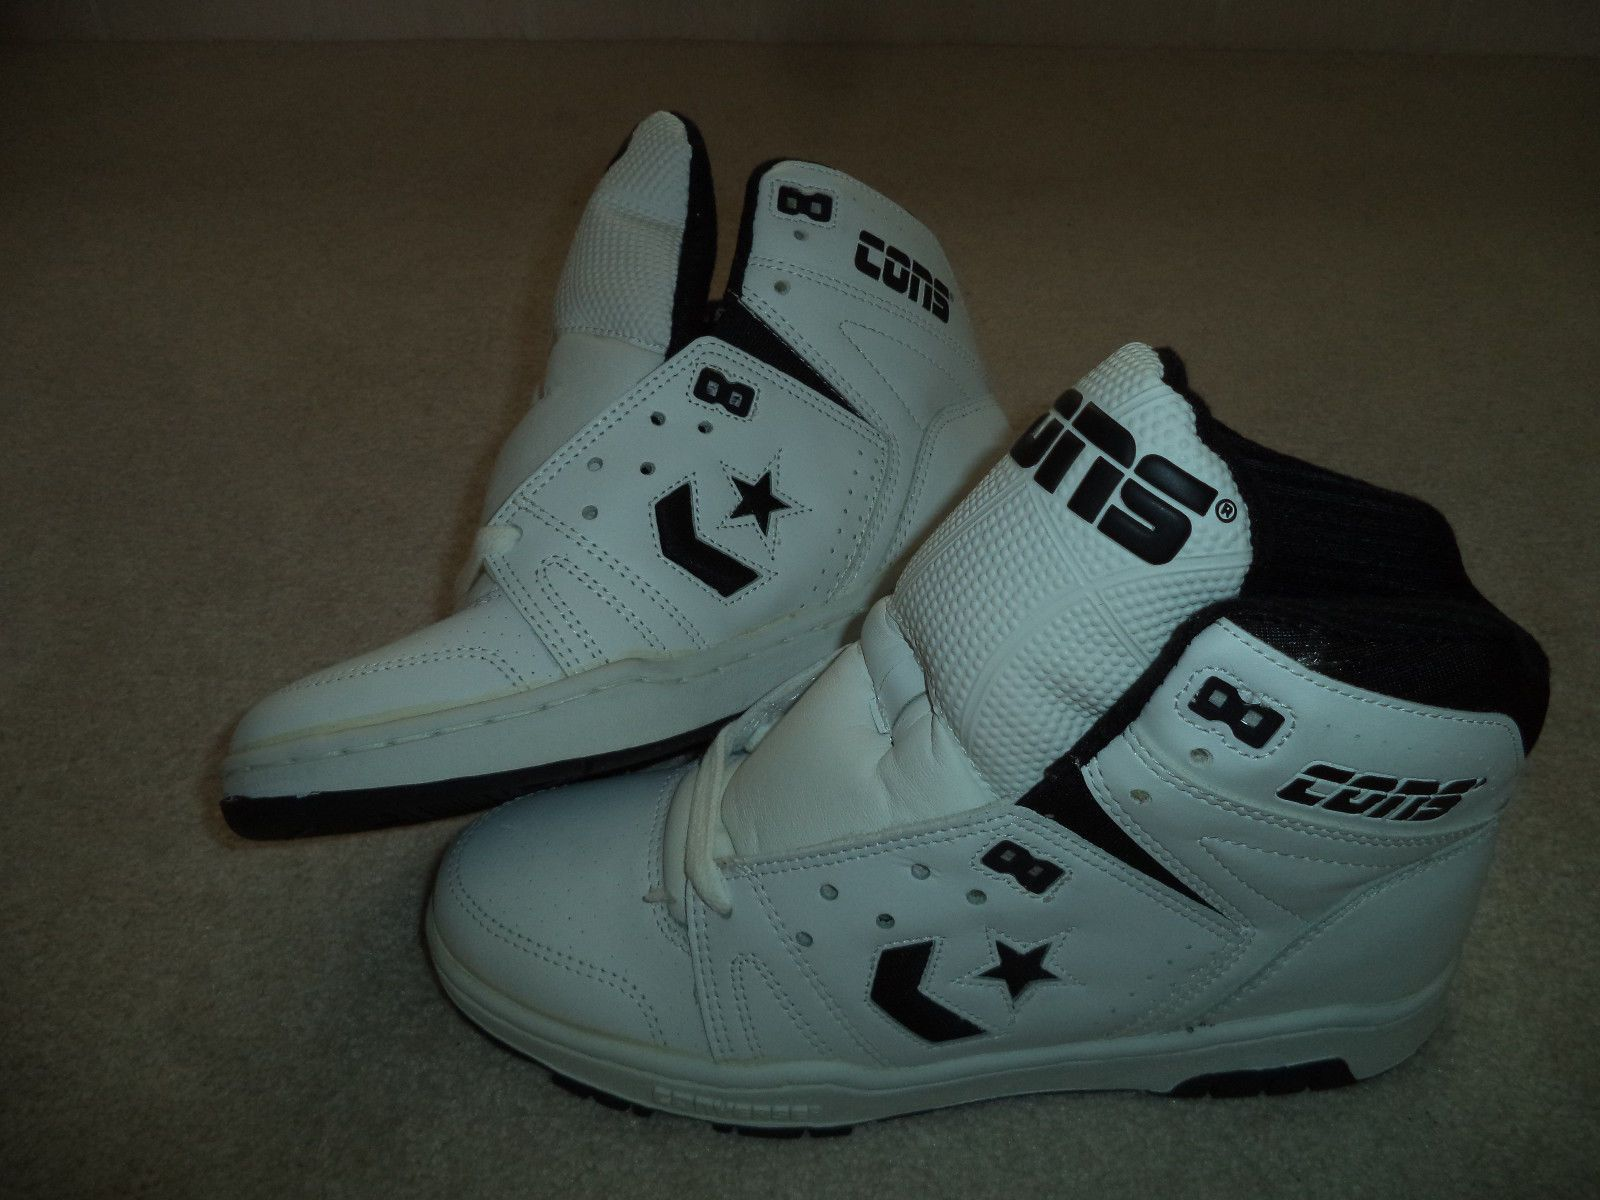 New Vintage 80s Converse Cons White Black High Tops Mens 8 5 with Box | eBay